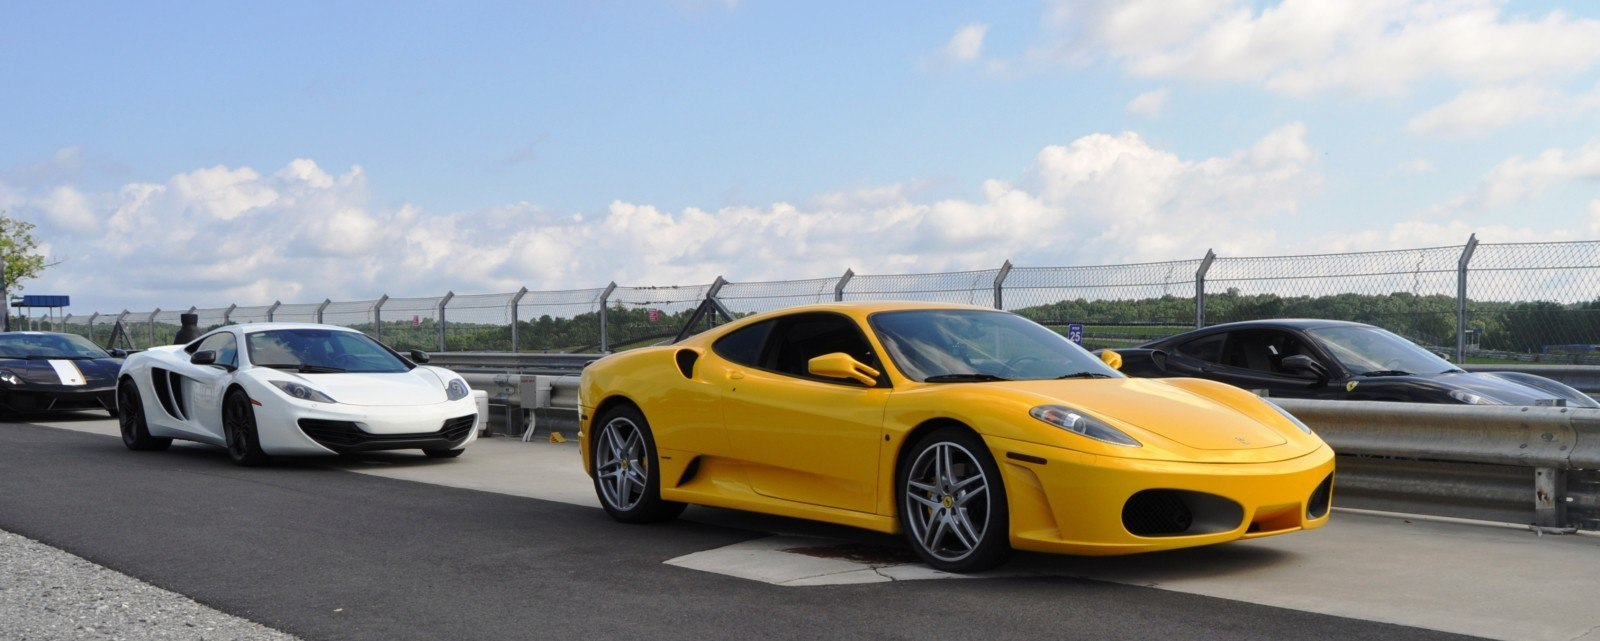 Beating the Supercar Paradox - 2007 Ferrari F430 at Velocity Motorsports Supercar Track Drive 9